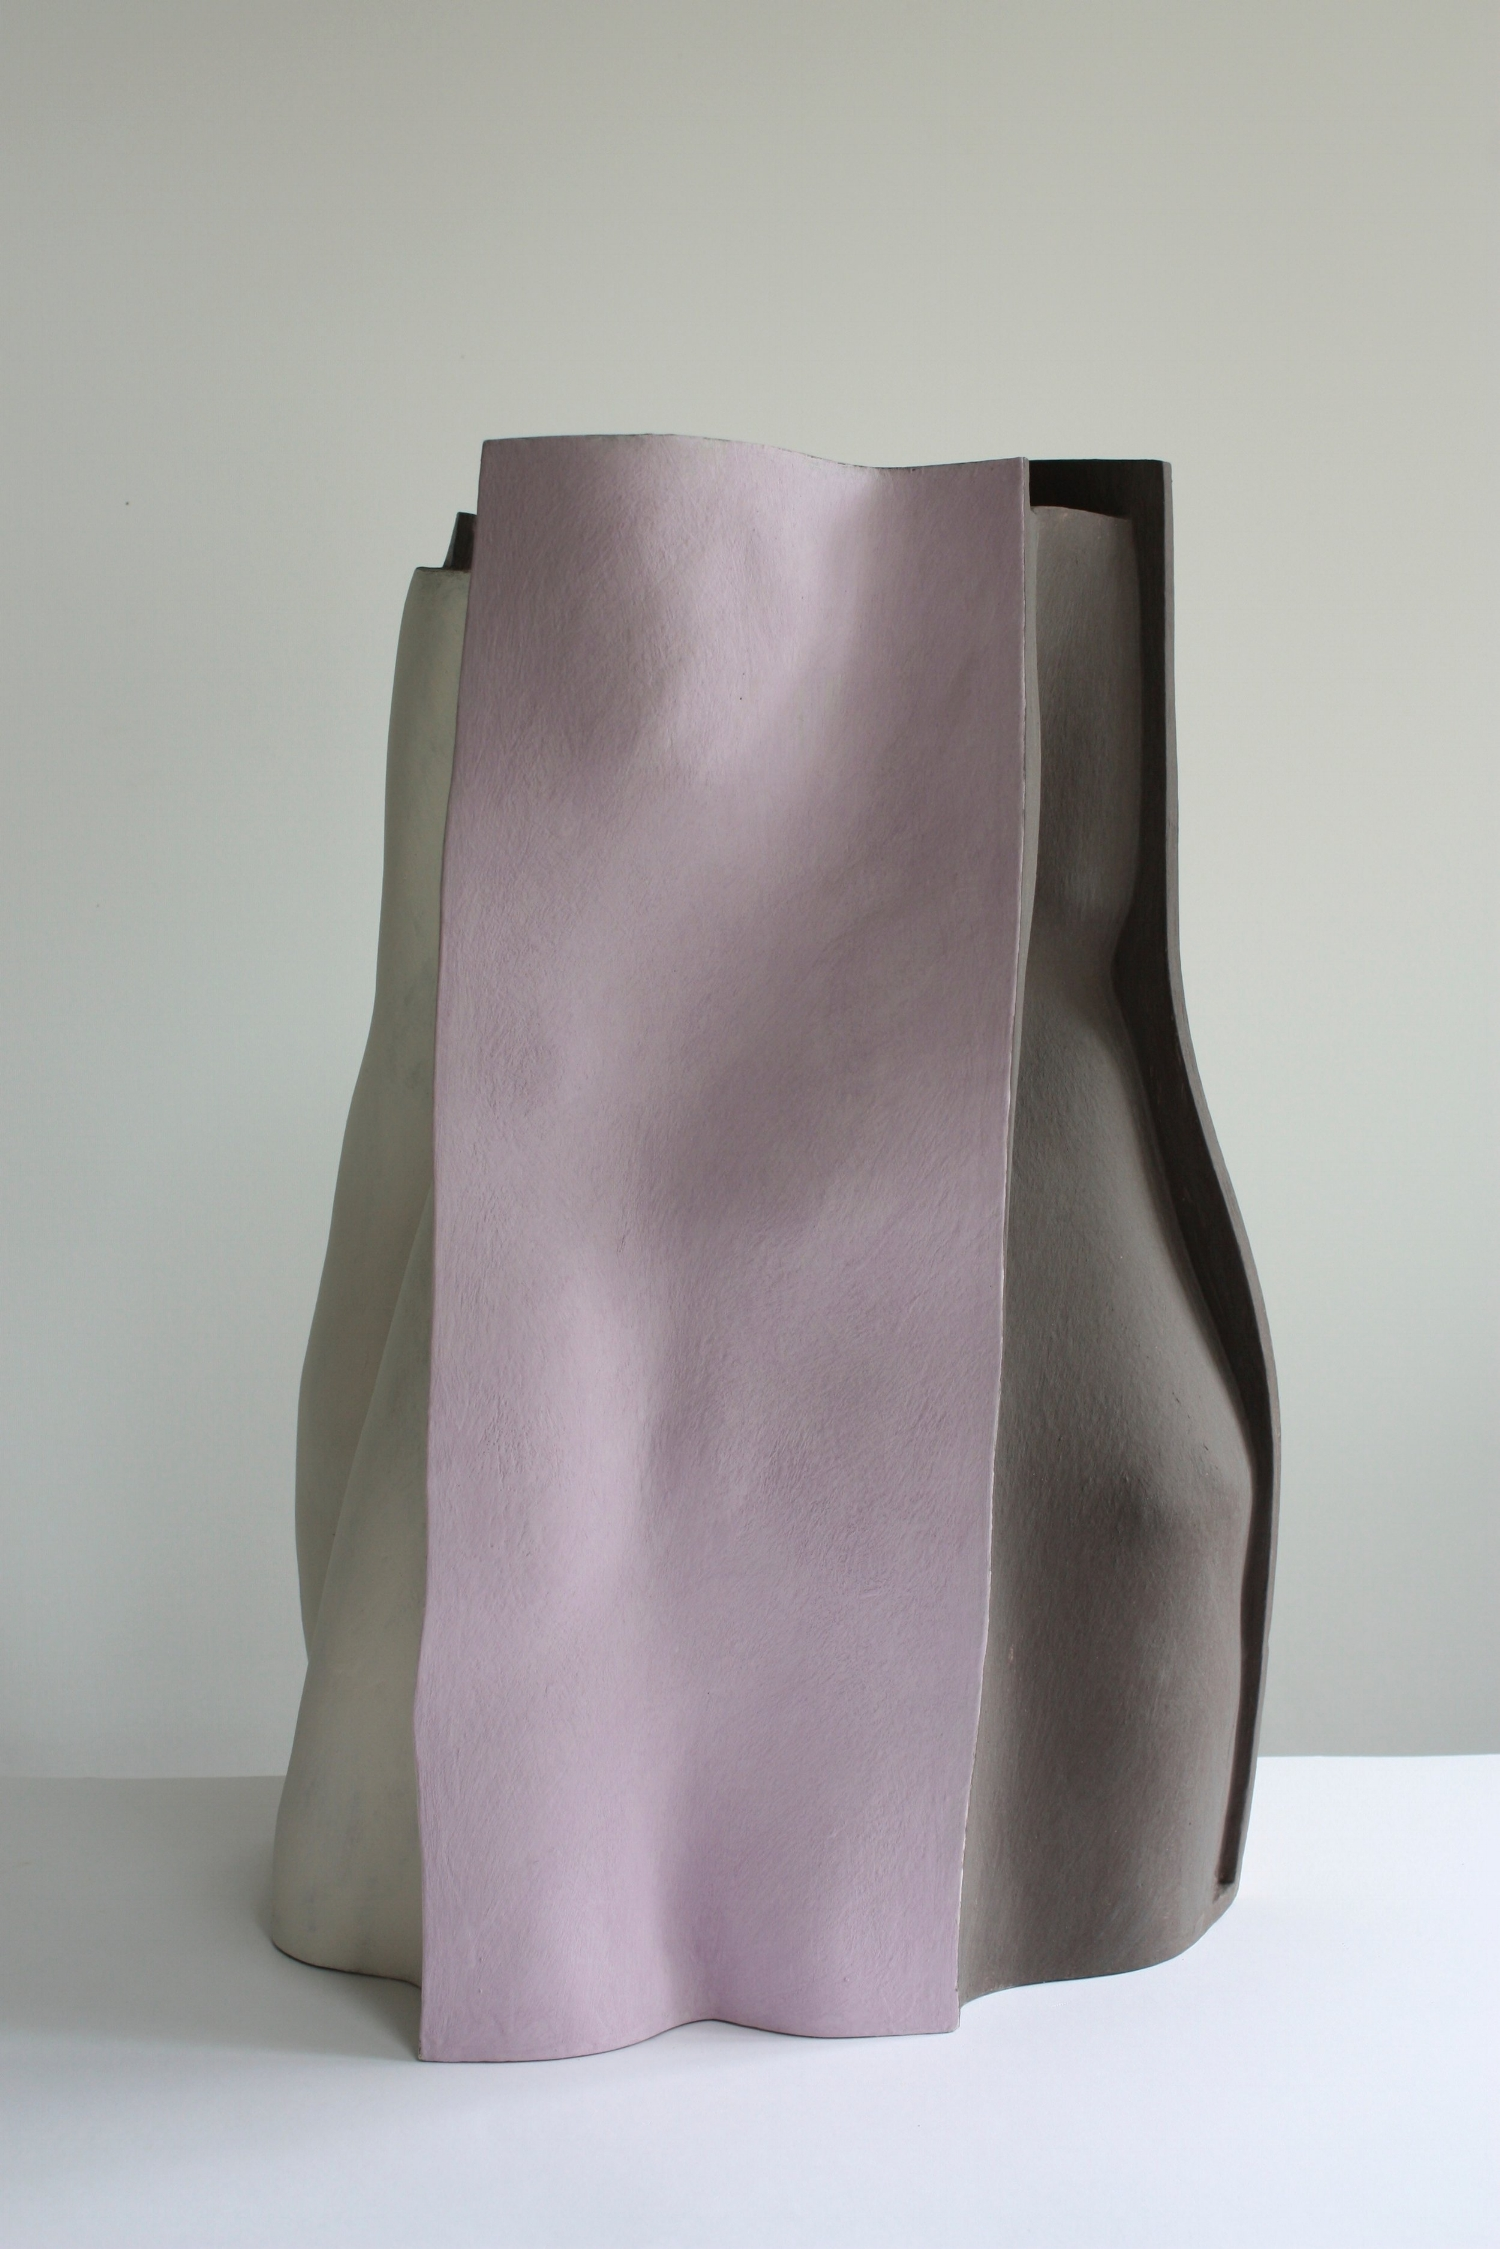 Where and when, 2013, 54cm high